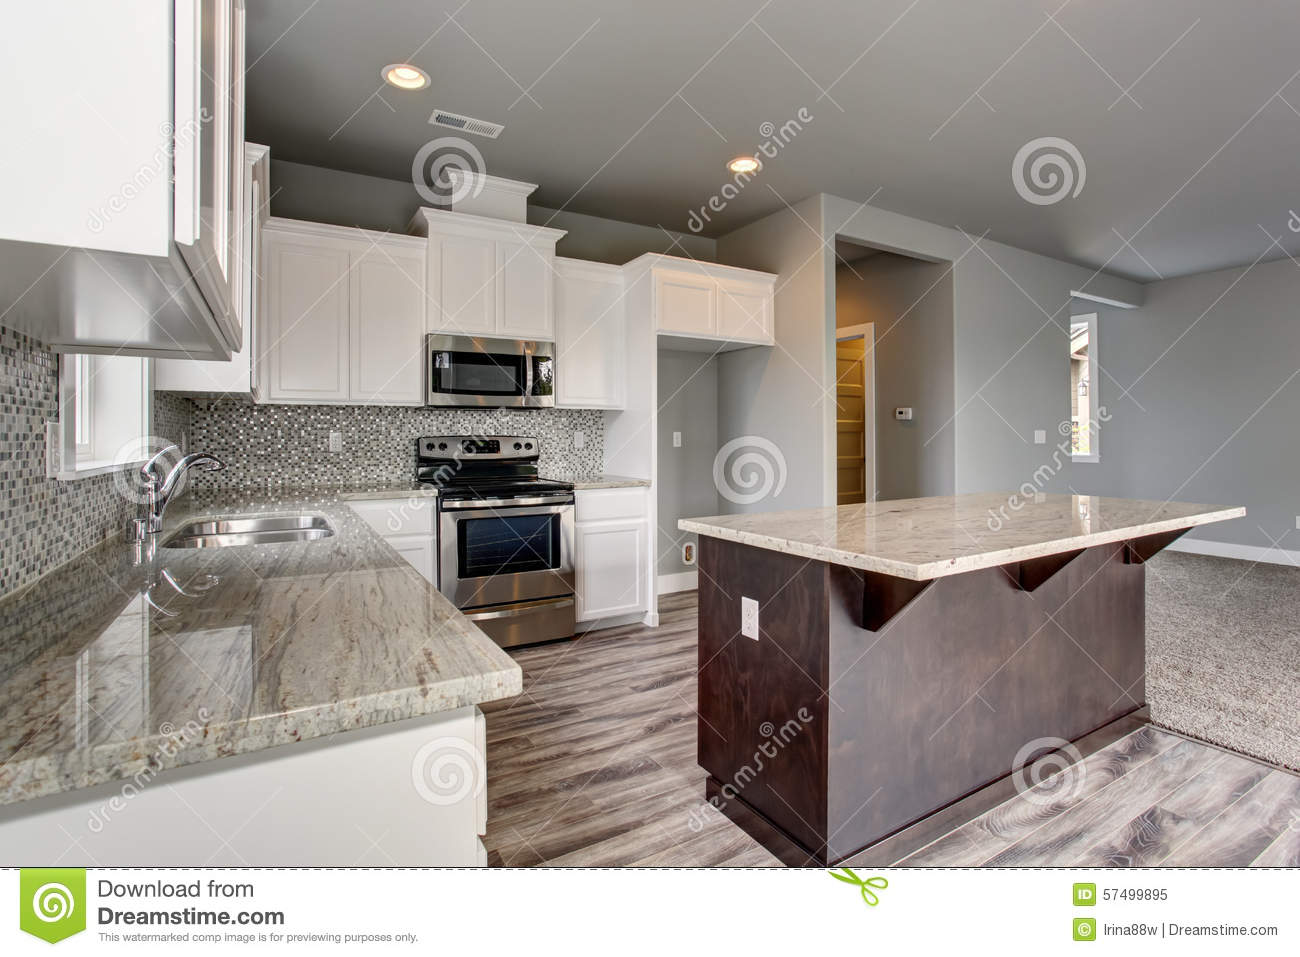 cuisine unique avec le plancher en bois dur gris image stock image 57499895. Black Bedroom Furniture Sets. Home Design Ideas